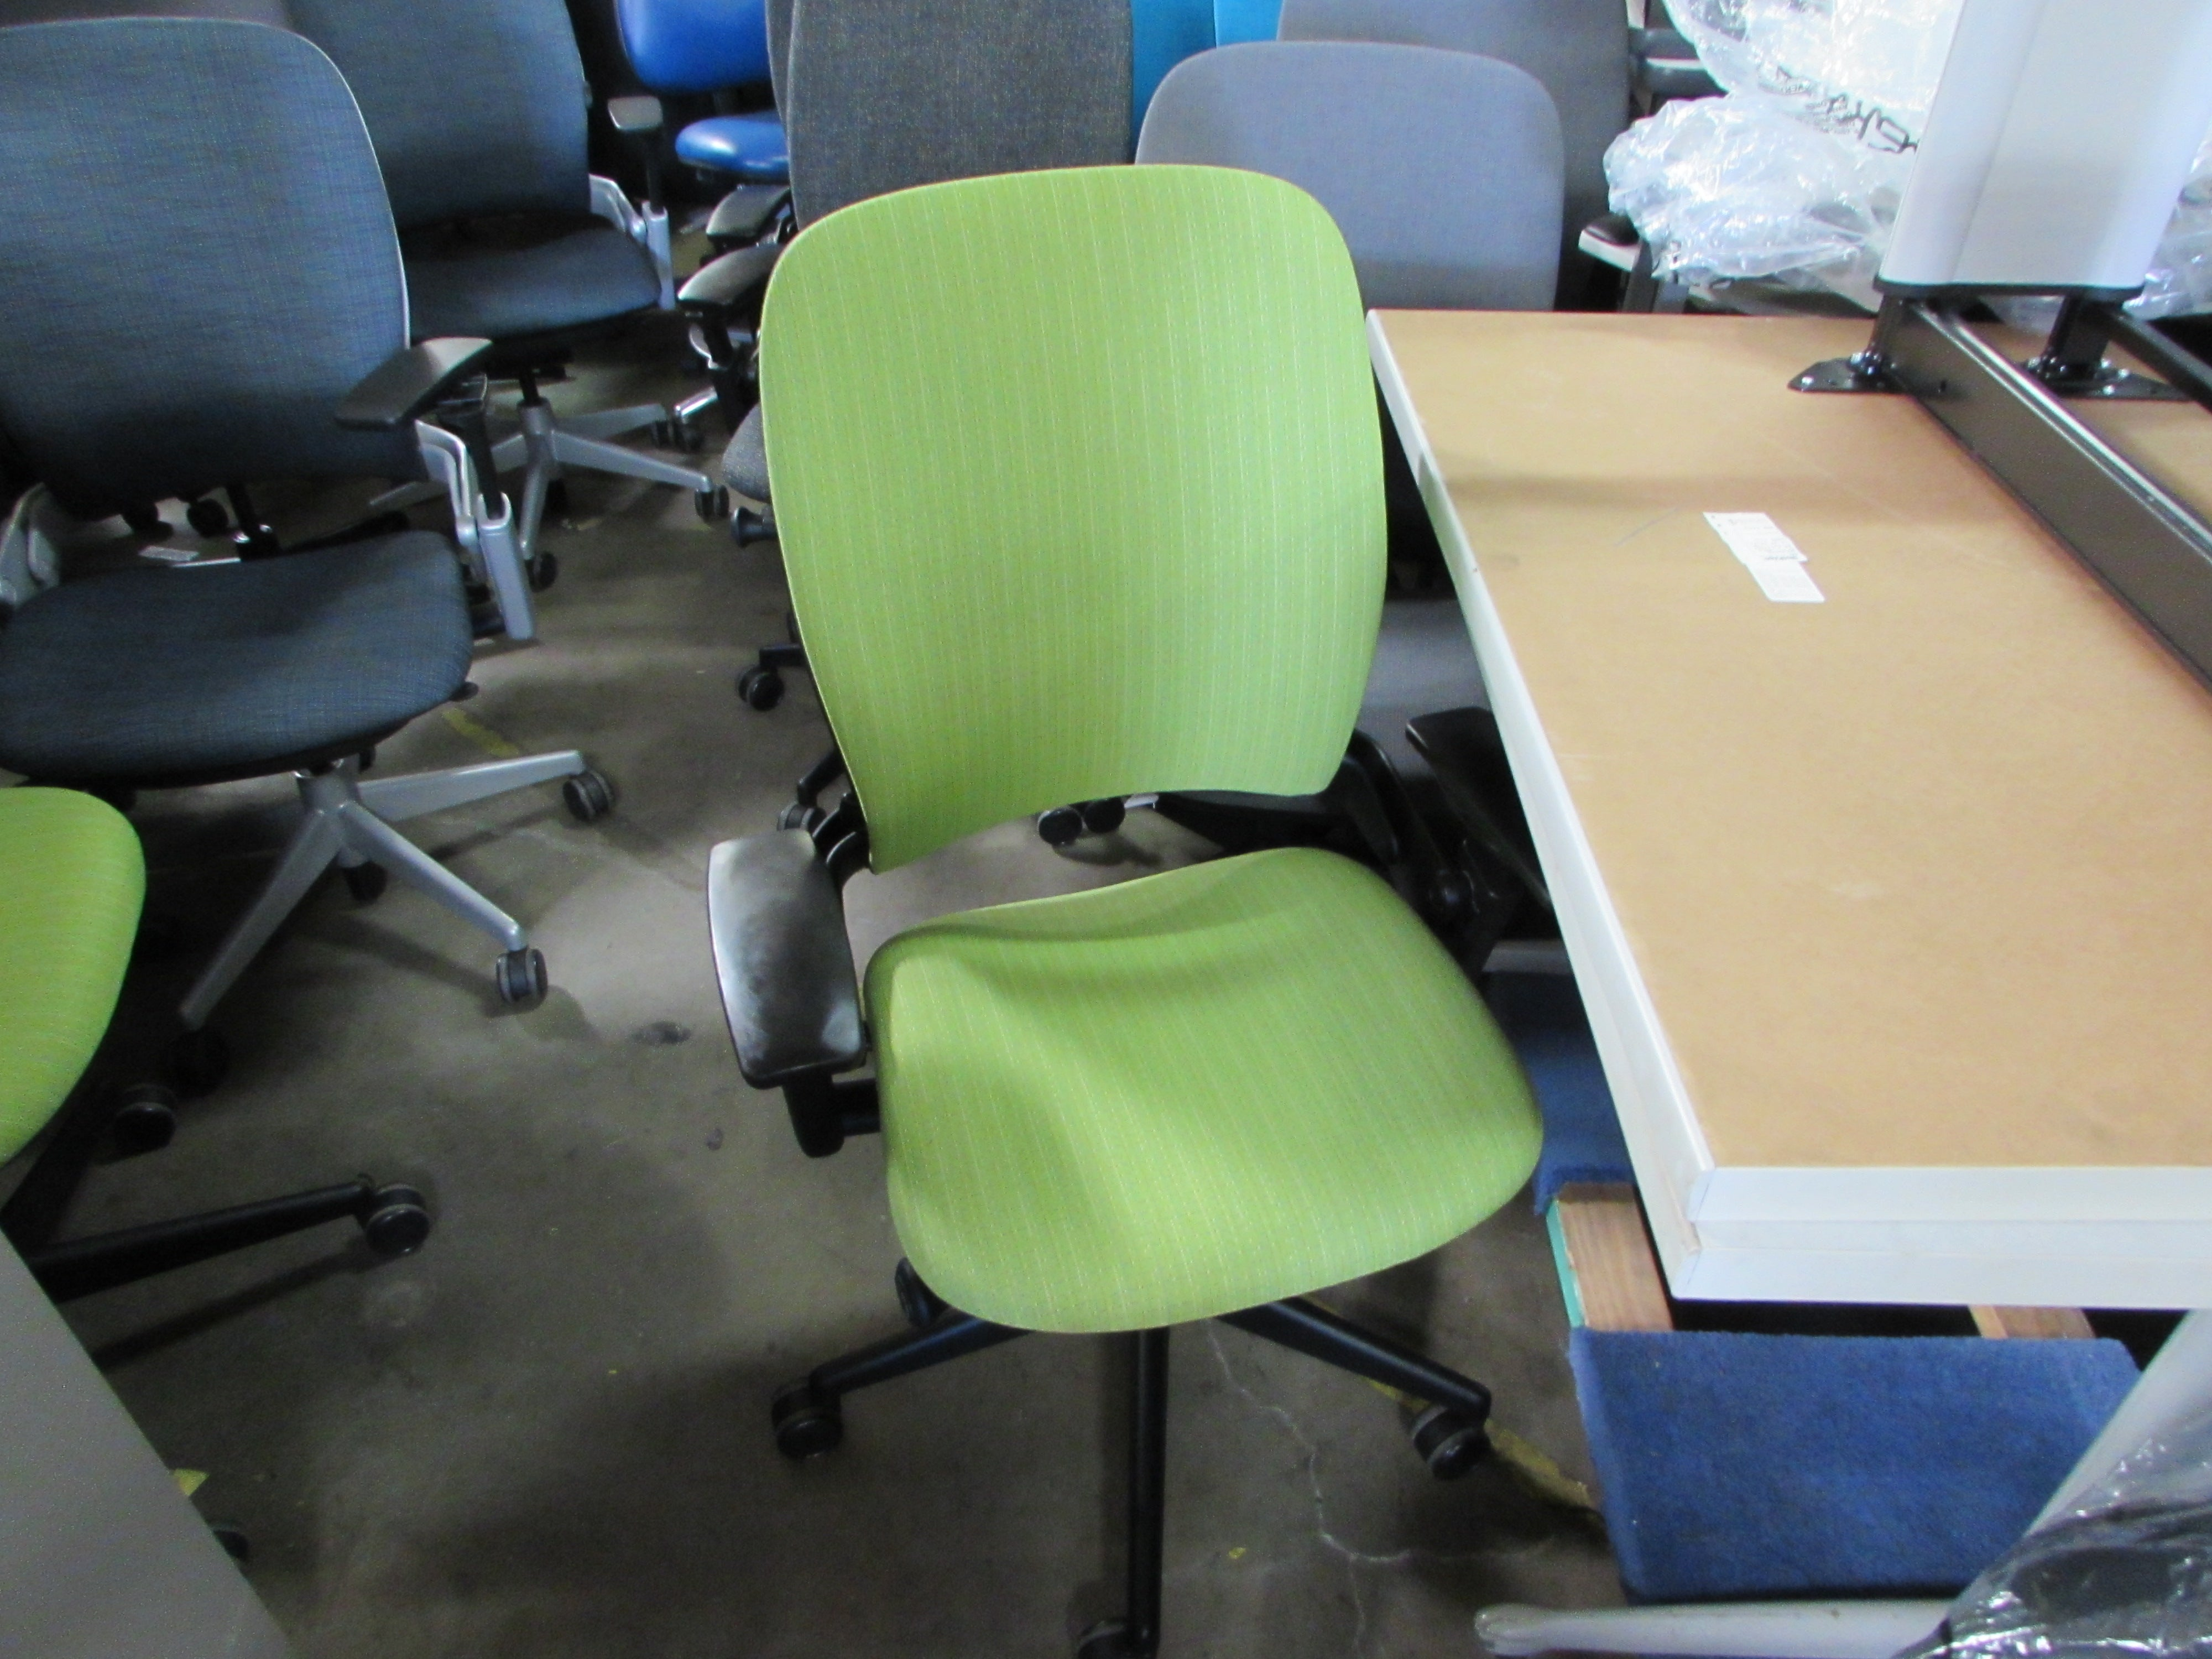 Steelcase Leap V50 Chairs Reupholstered in Lime Green